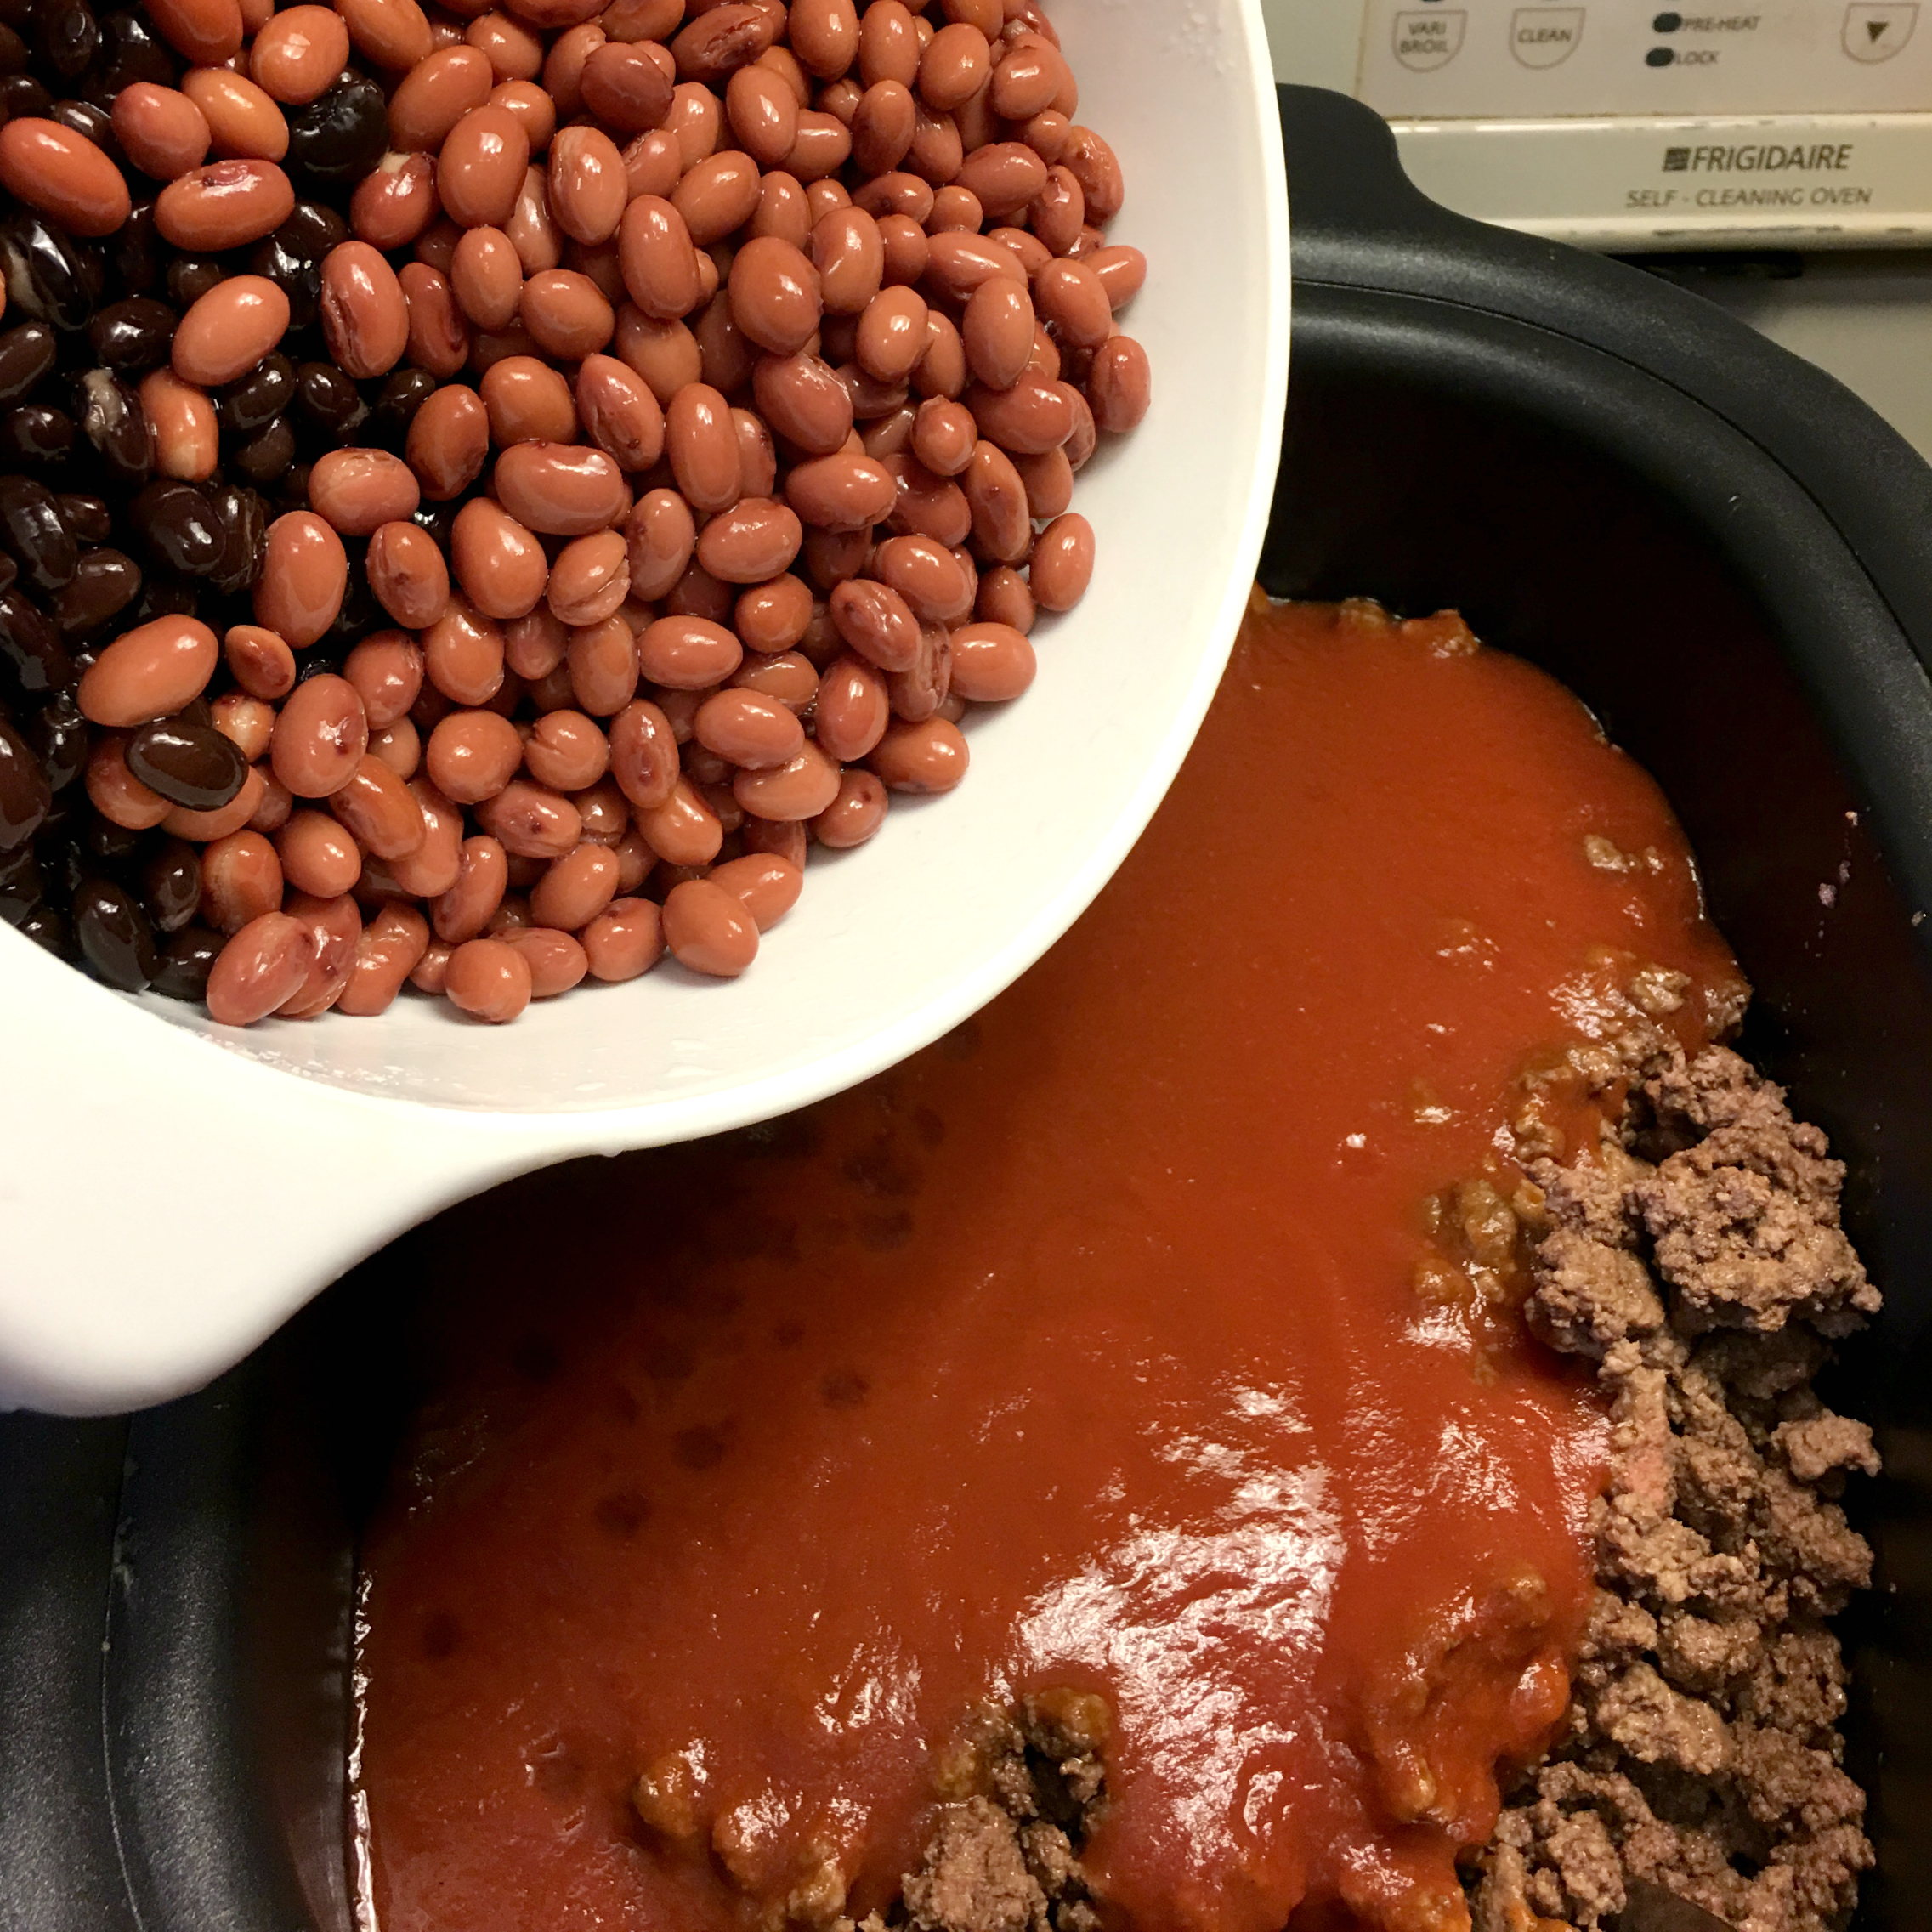 Secret Ingredient Chili - You Will Never View Chili The Same Again! #7Waysto7UP